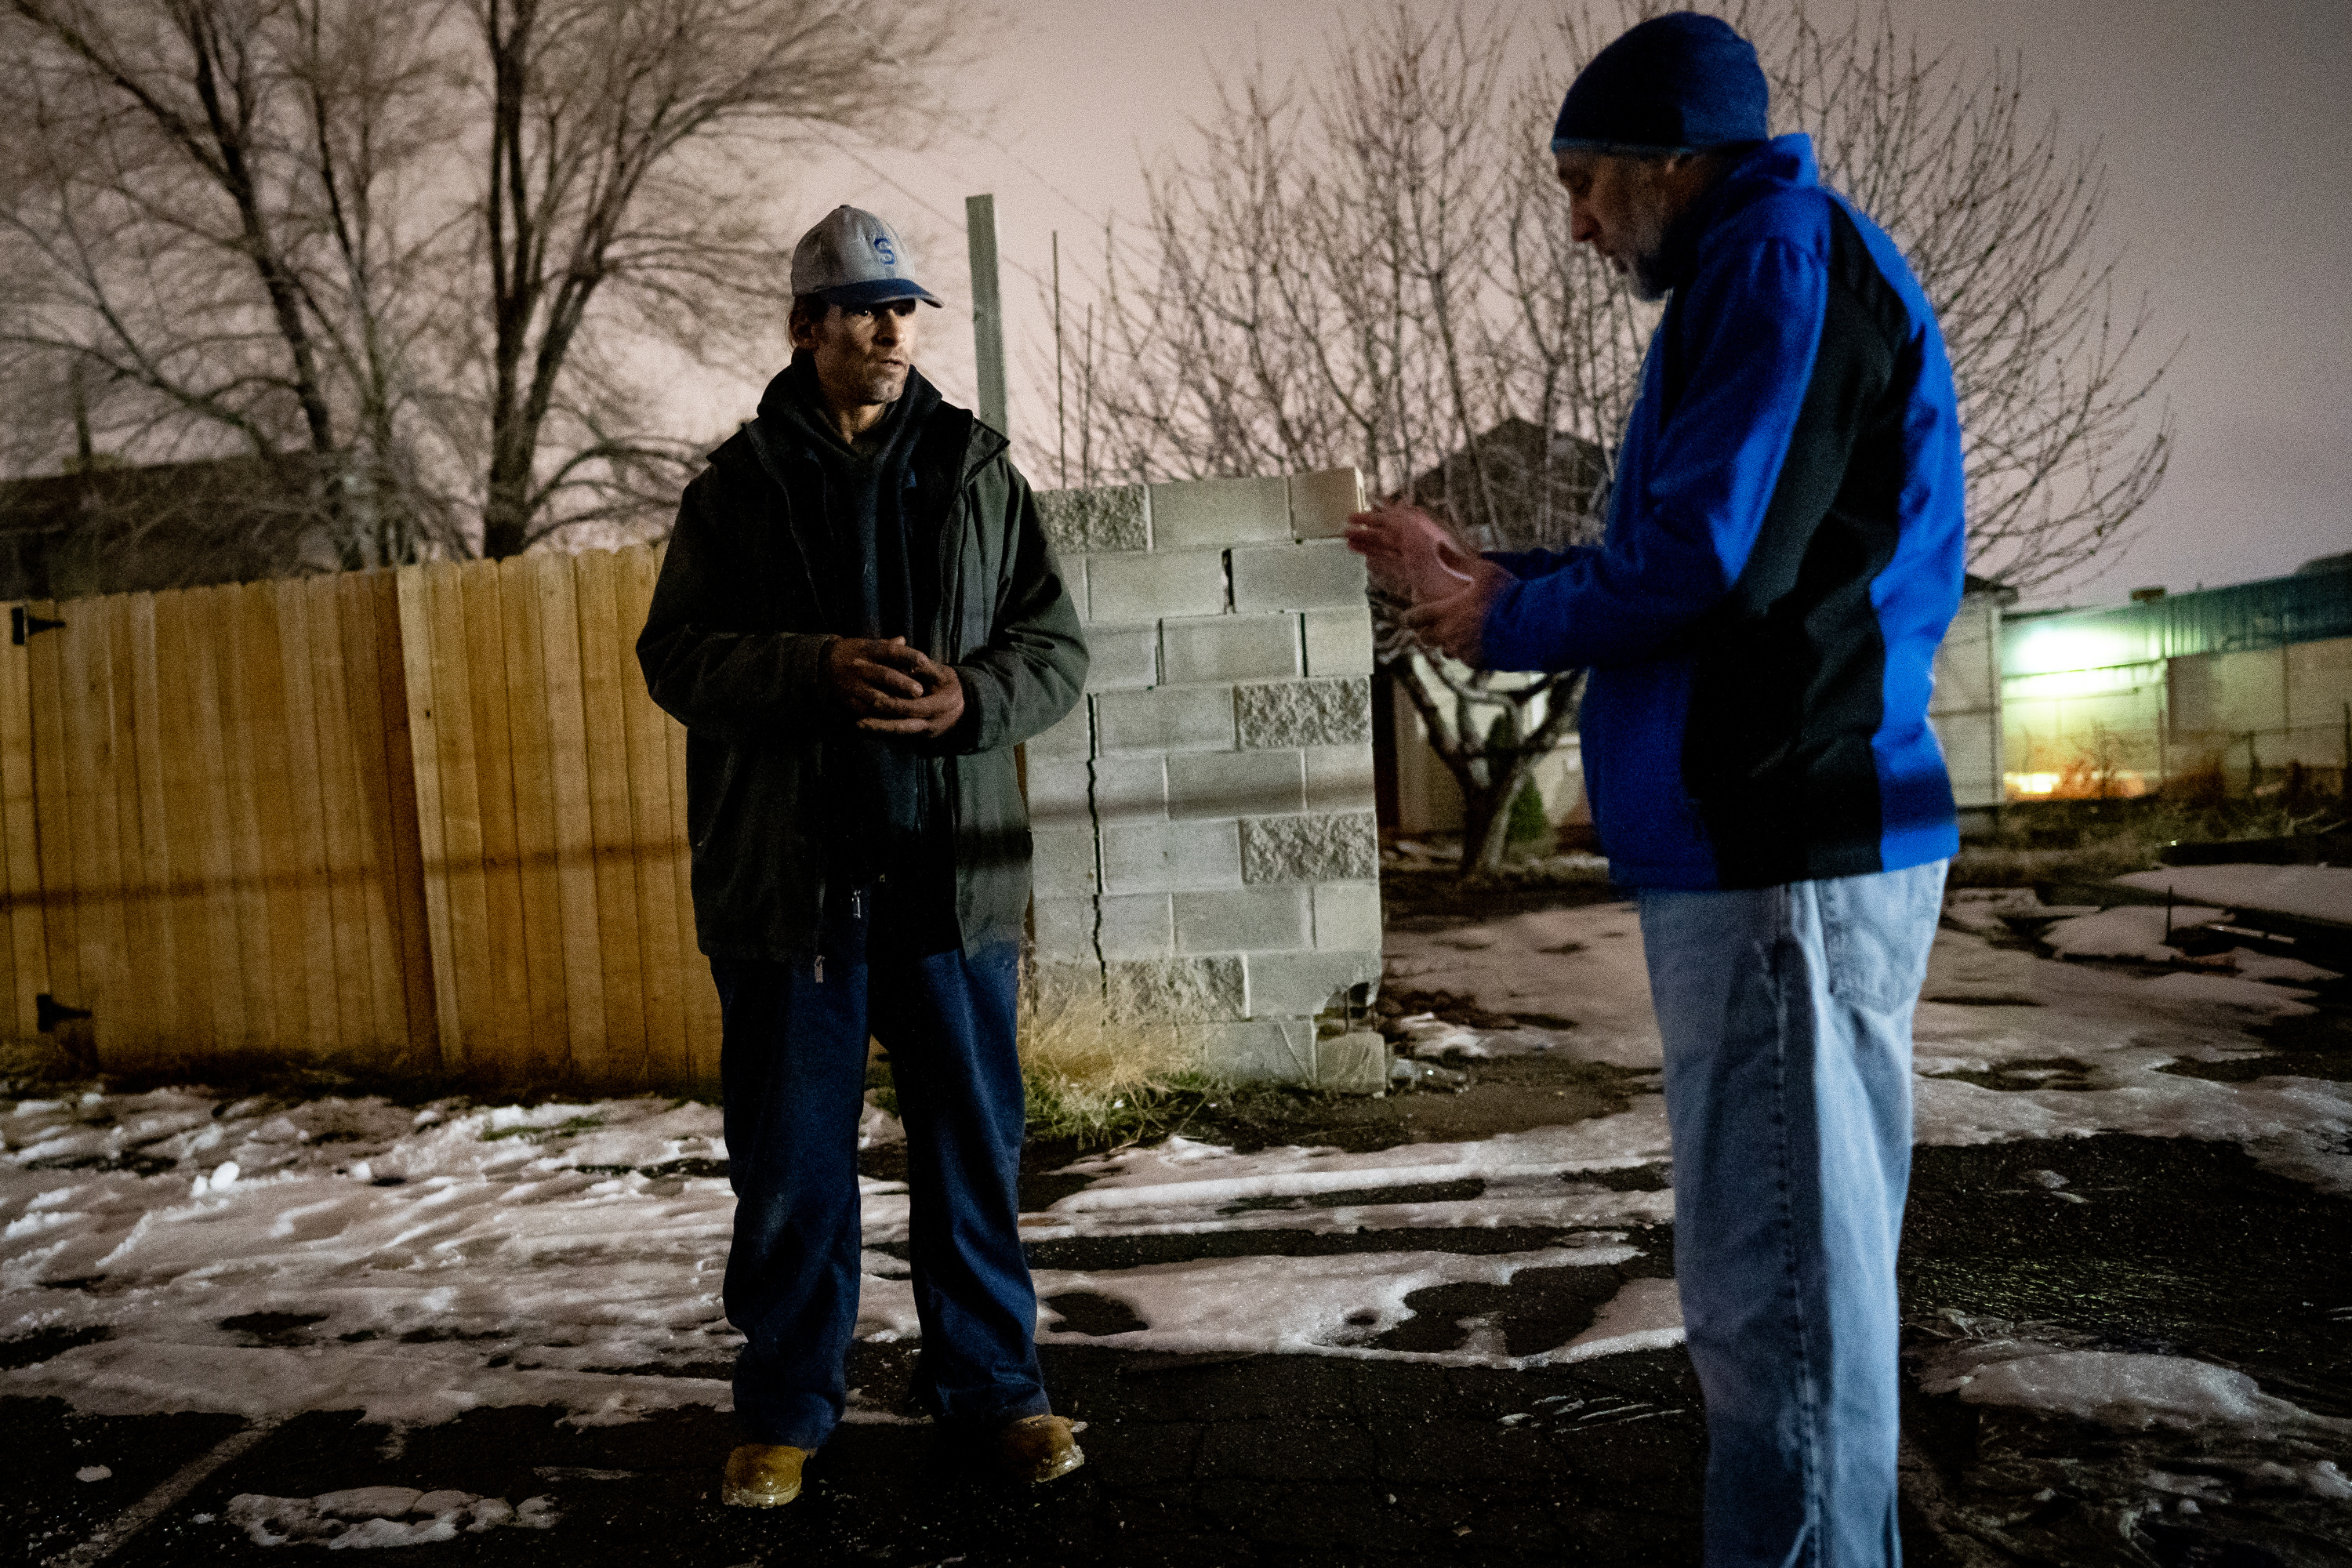 David Litvack, senior policy adviser to Salt Lake City Mayor Erin Mendenhall, right, interviews Jeremy, left, behind a business onNorth Temple while volunteering for the annual Point-in-Time count in Salt Lake City on Thursday, Jan. 23, 2020. Point-in-Time is a count of sheltered and unsheltered people experiencing homelessness conducted nationwide over several days in January.